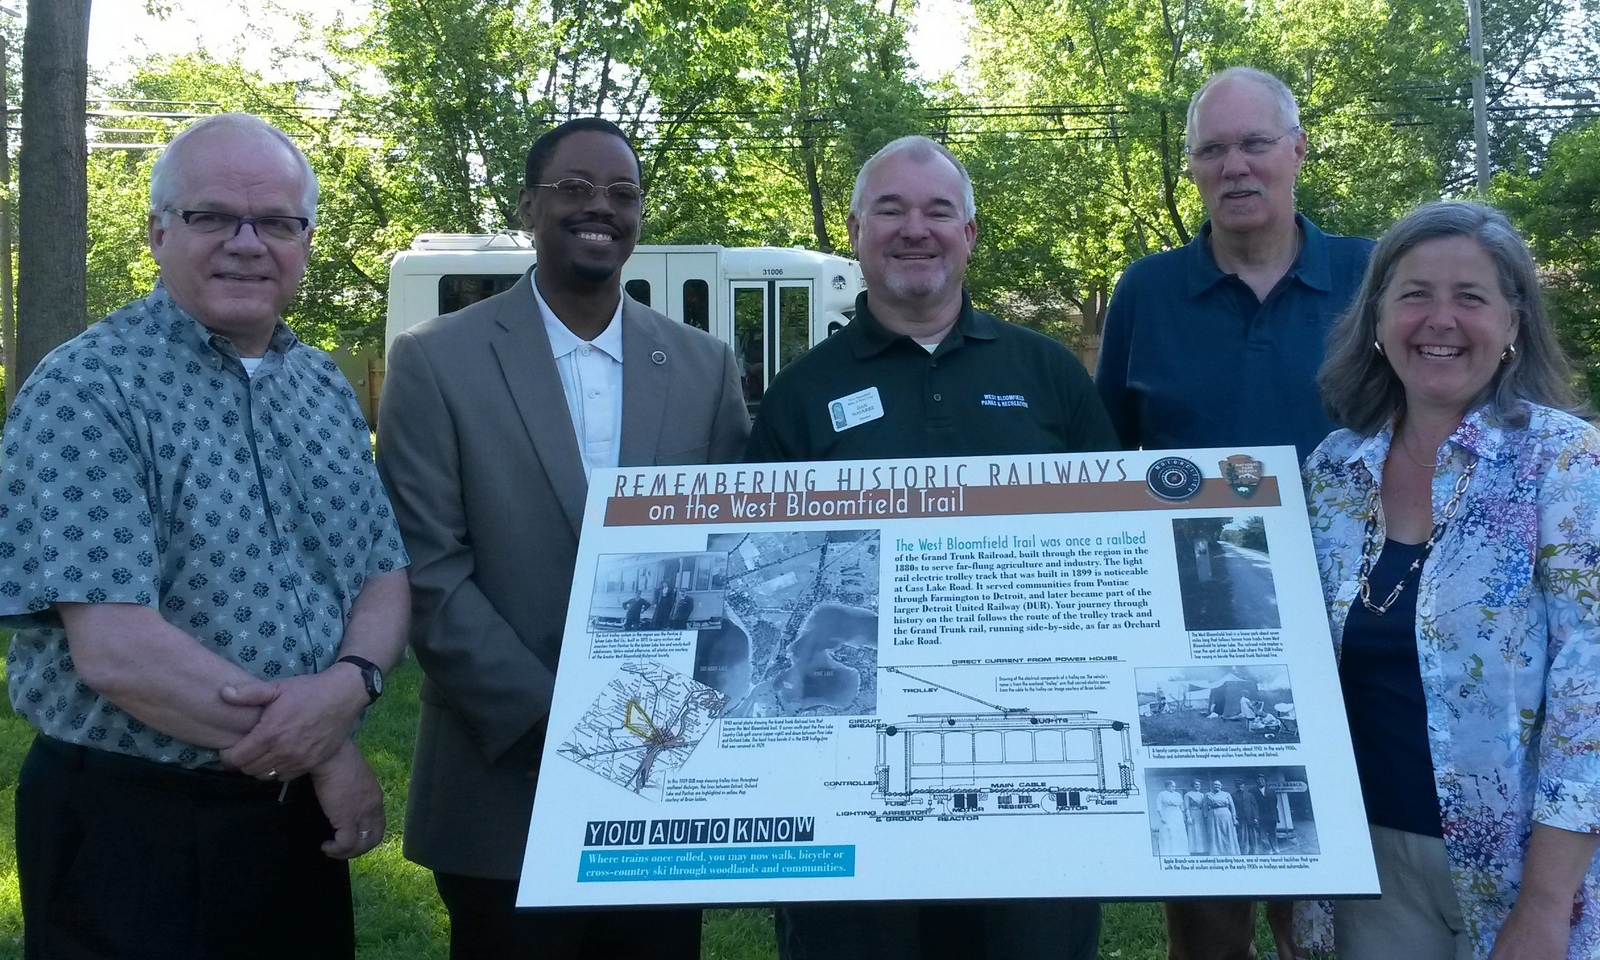 Event 2014: Motor Cities Heritage, Wayside Exhibit Signs Dedication